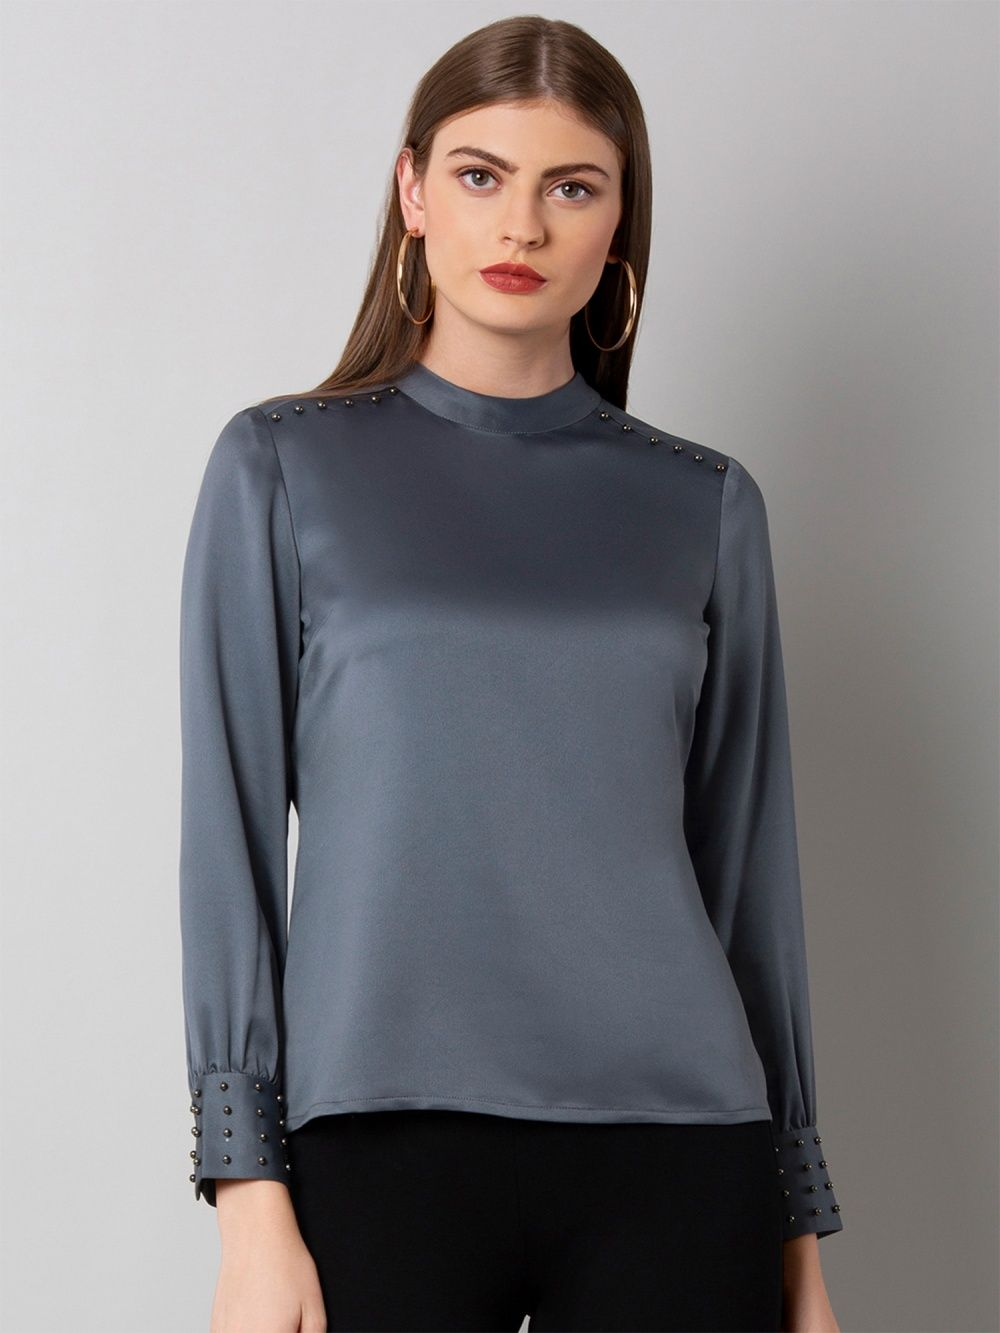 dbb65364162 Faballey Shirts Tops and Crop Tops   Buy Faballey Grey Pearl ...